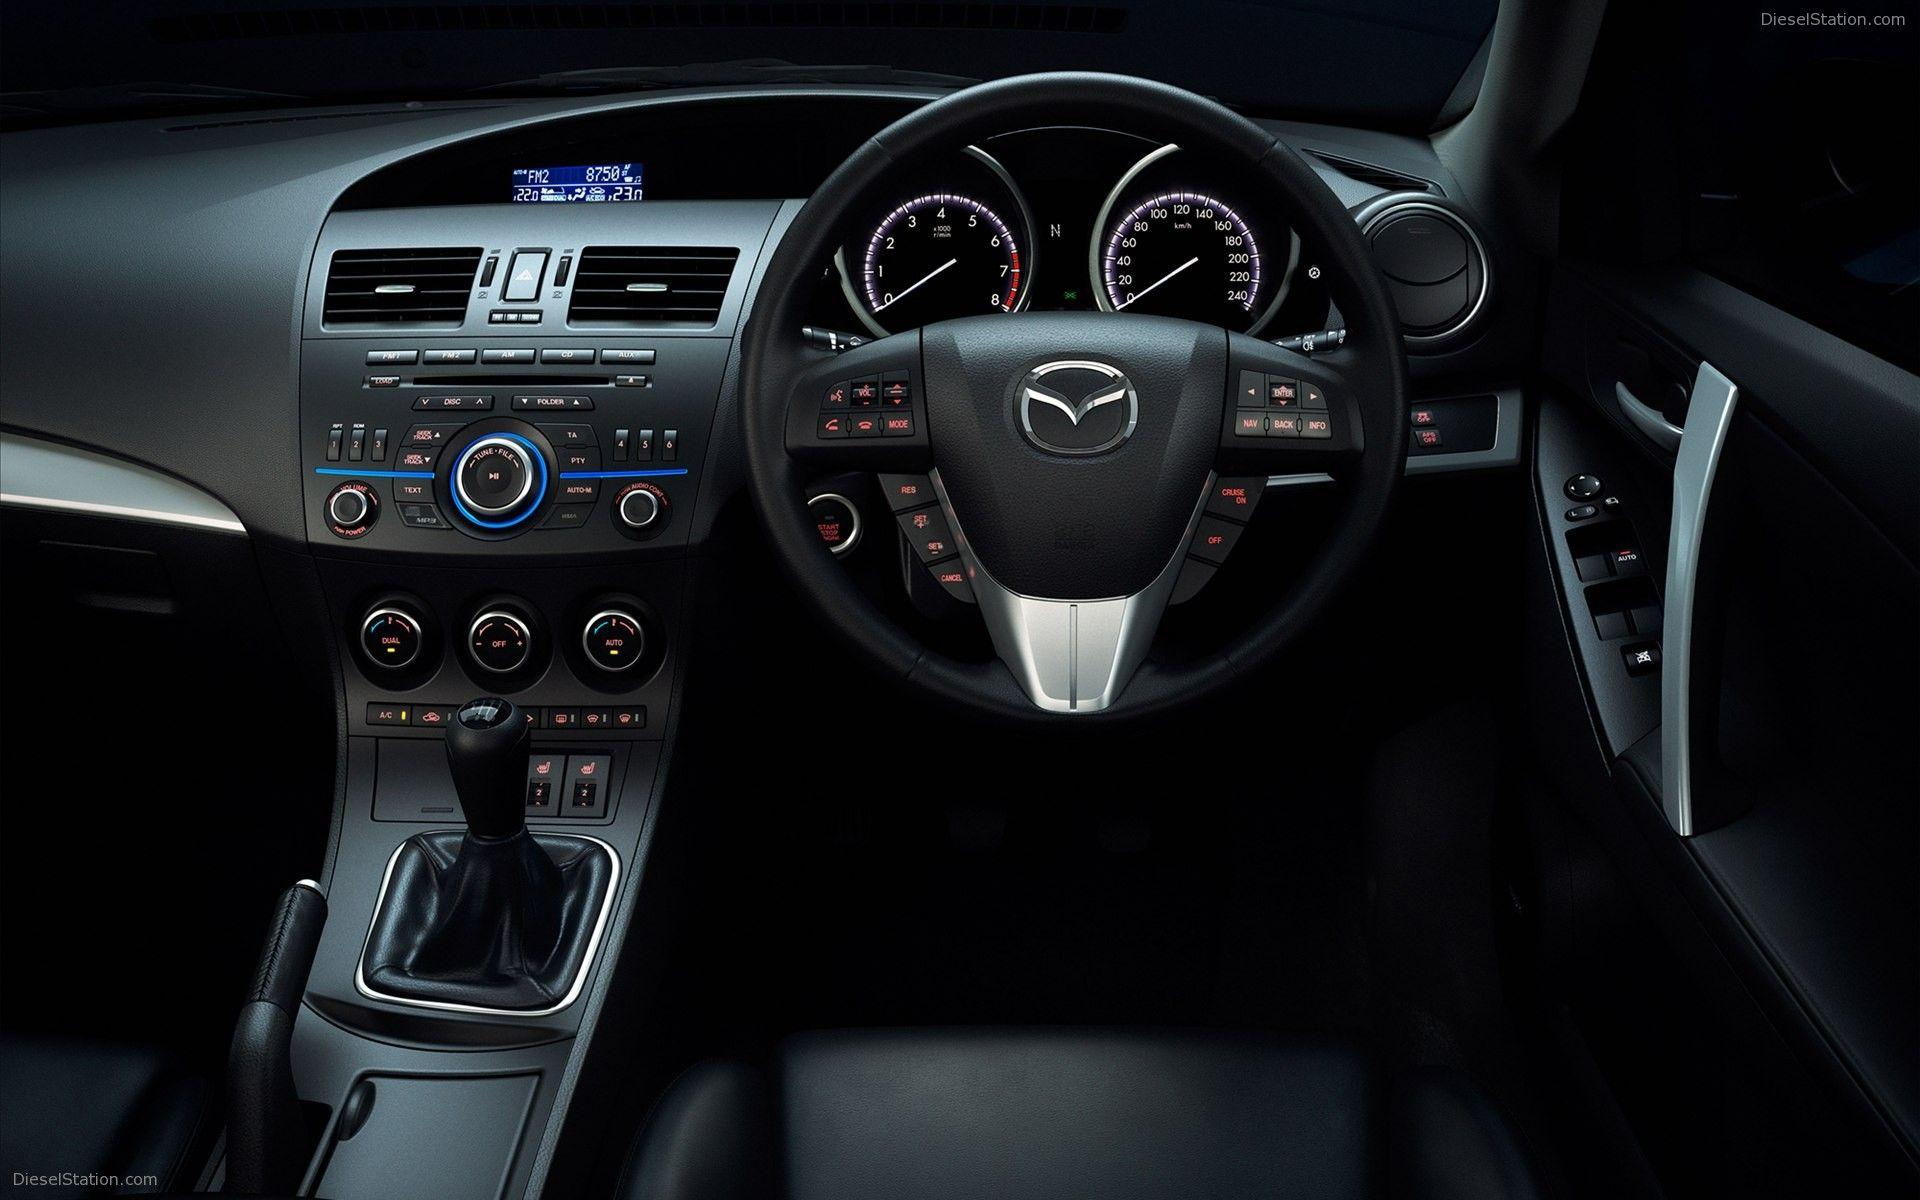 Upgraded Mazda 3 2011 Widescreen Exotic Car Wallpapers of 8